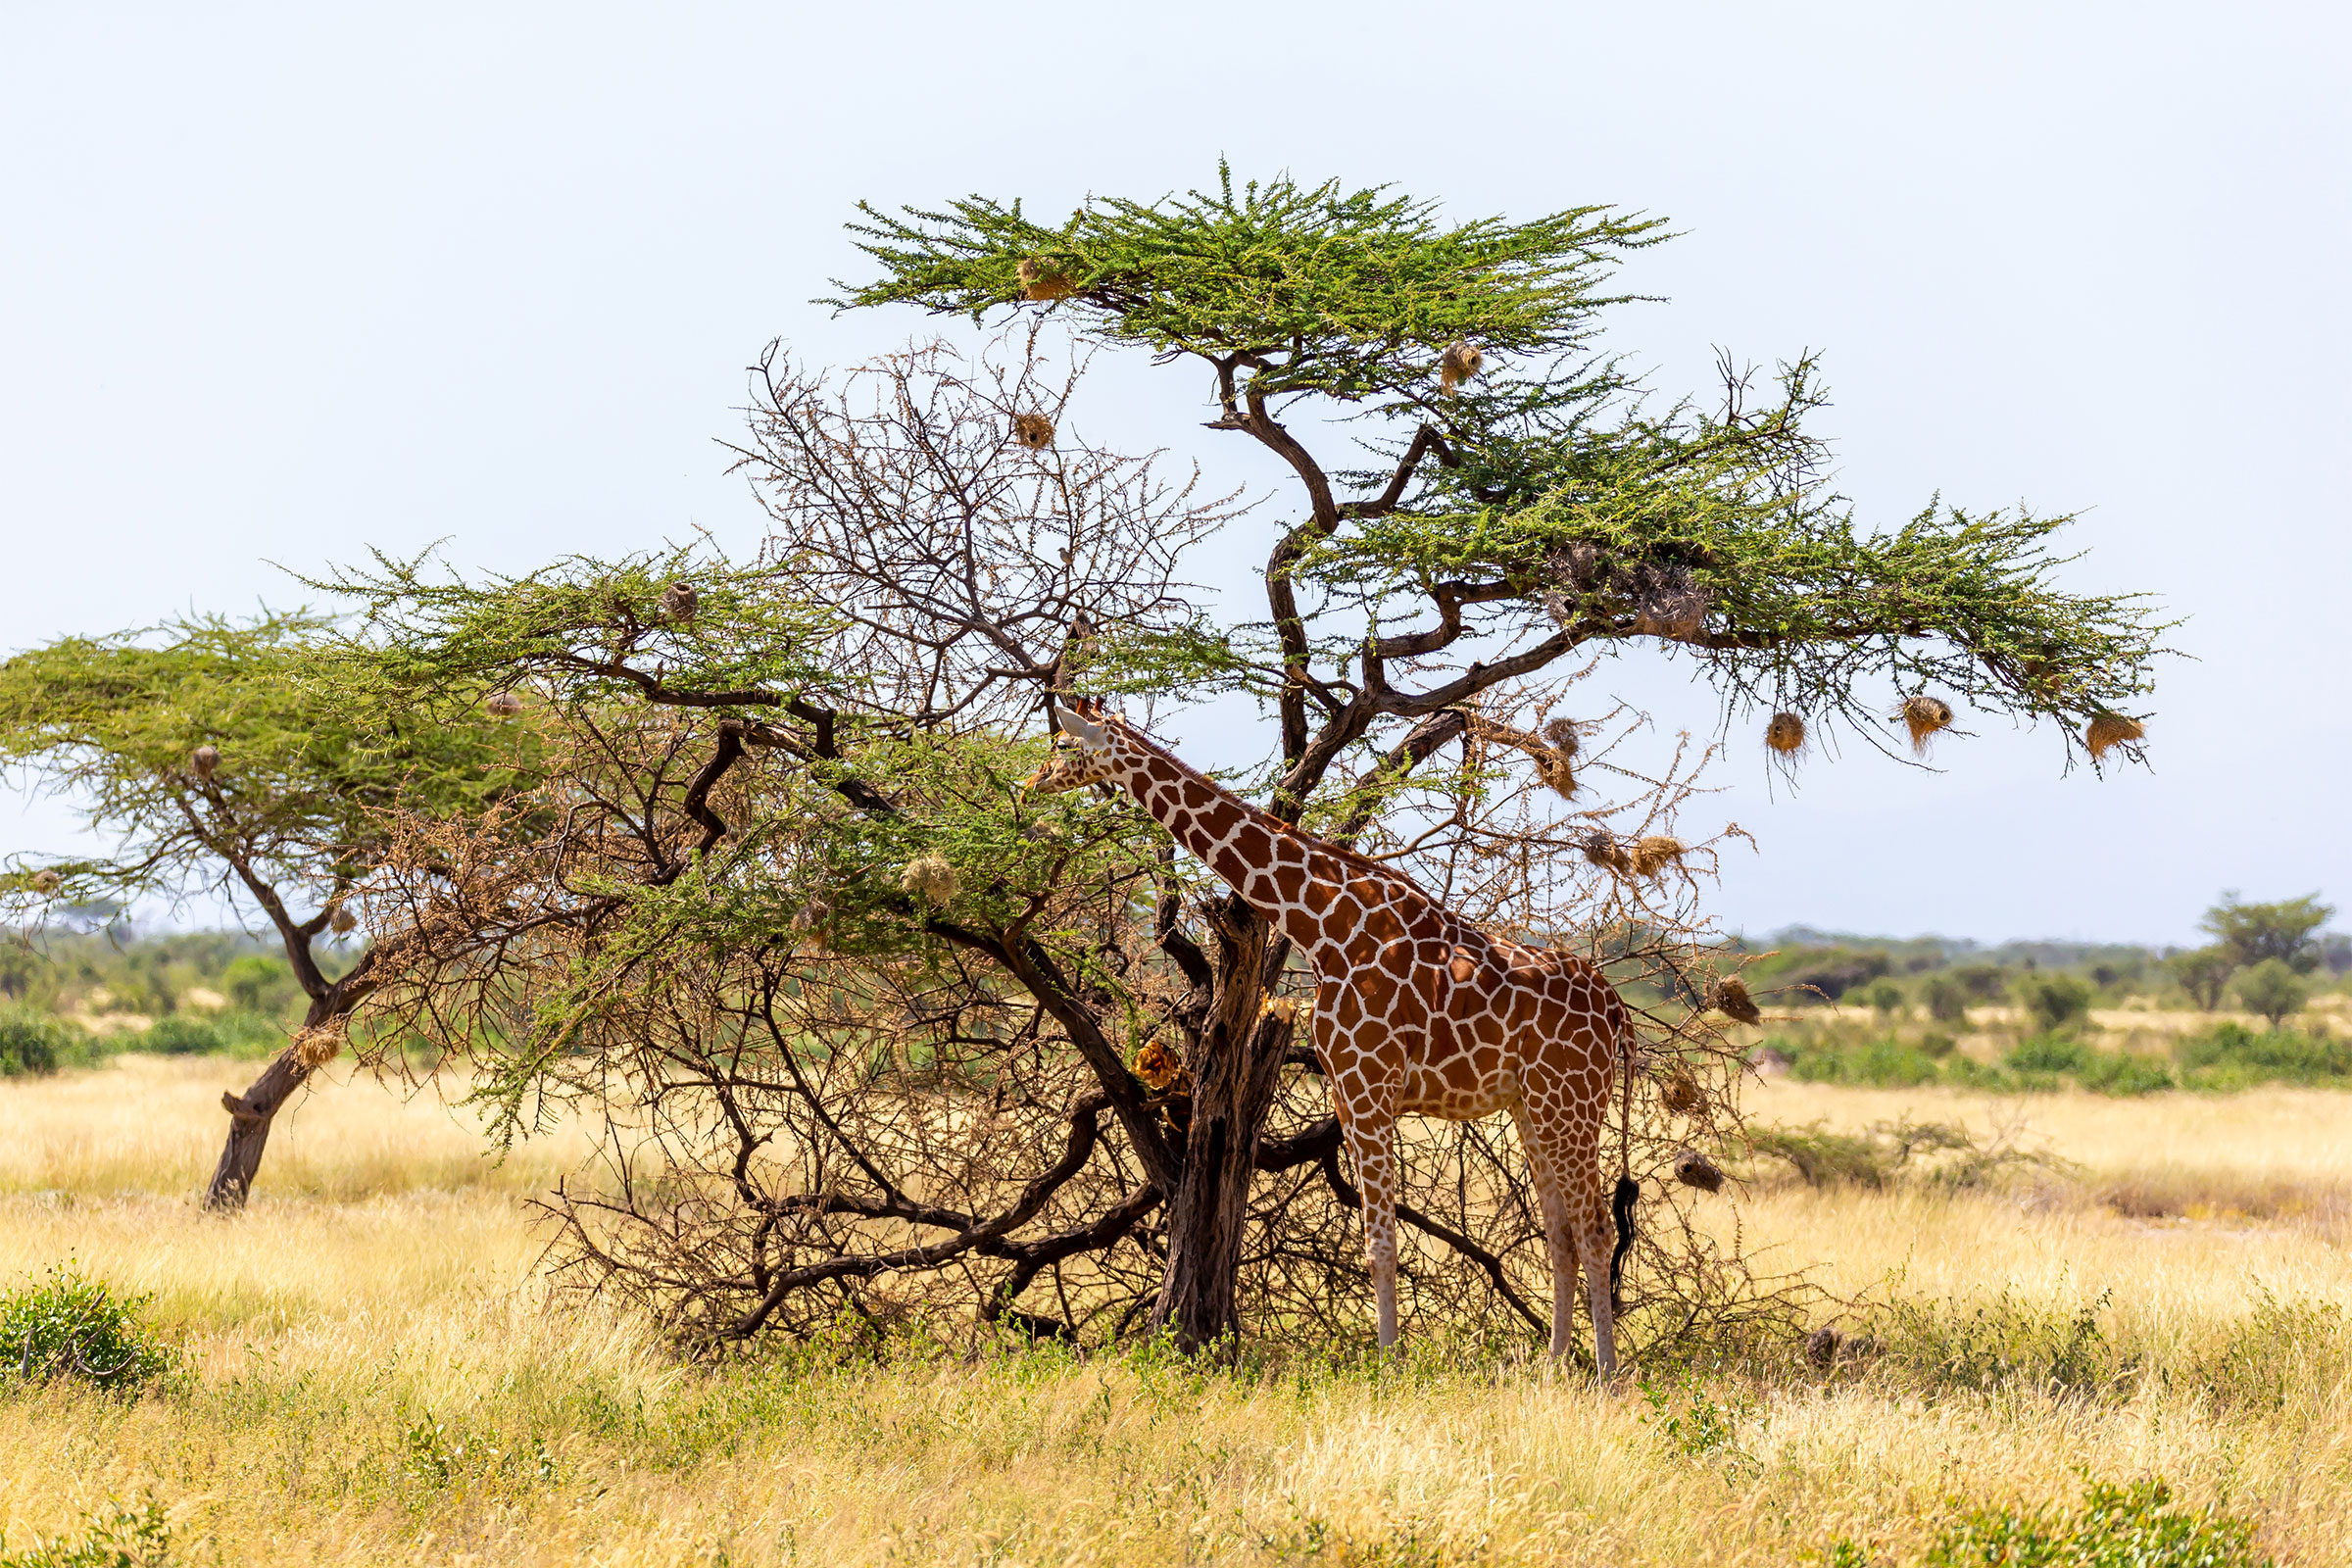 Somalia Giraffe Eating Acacia Tree